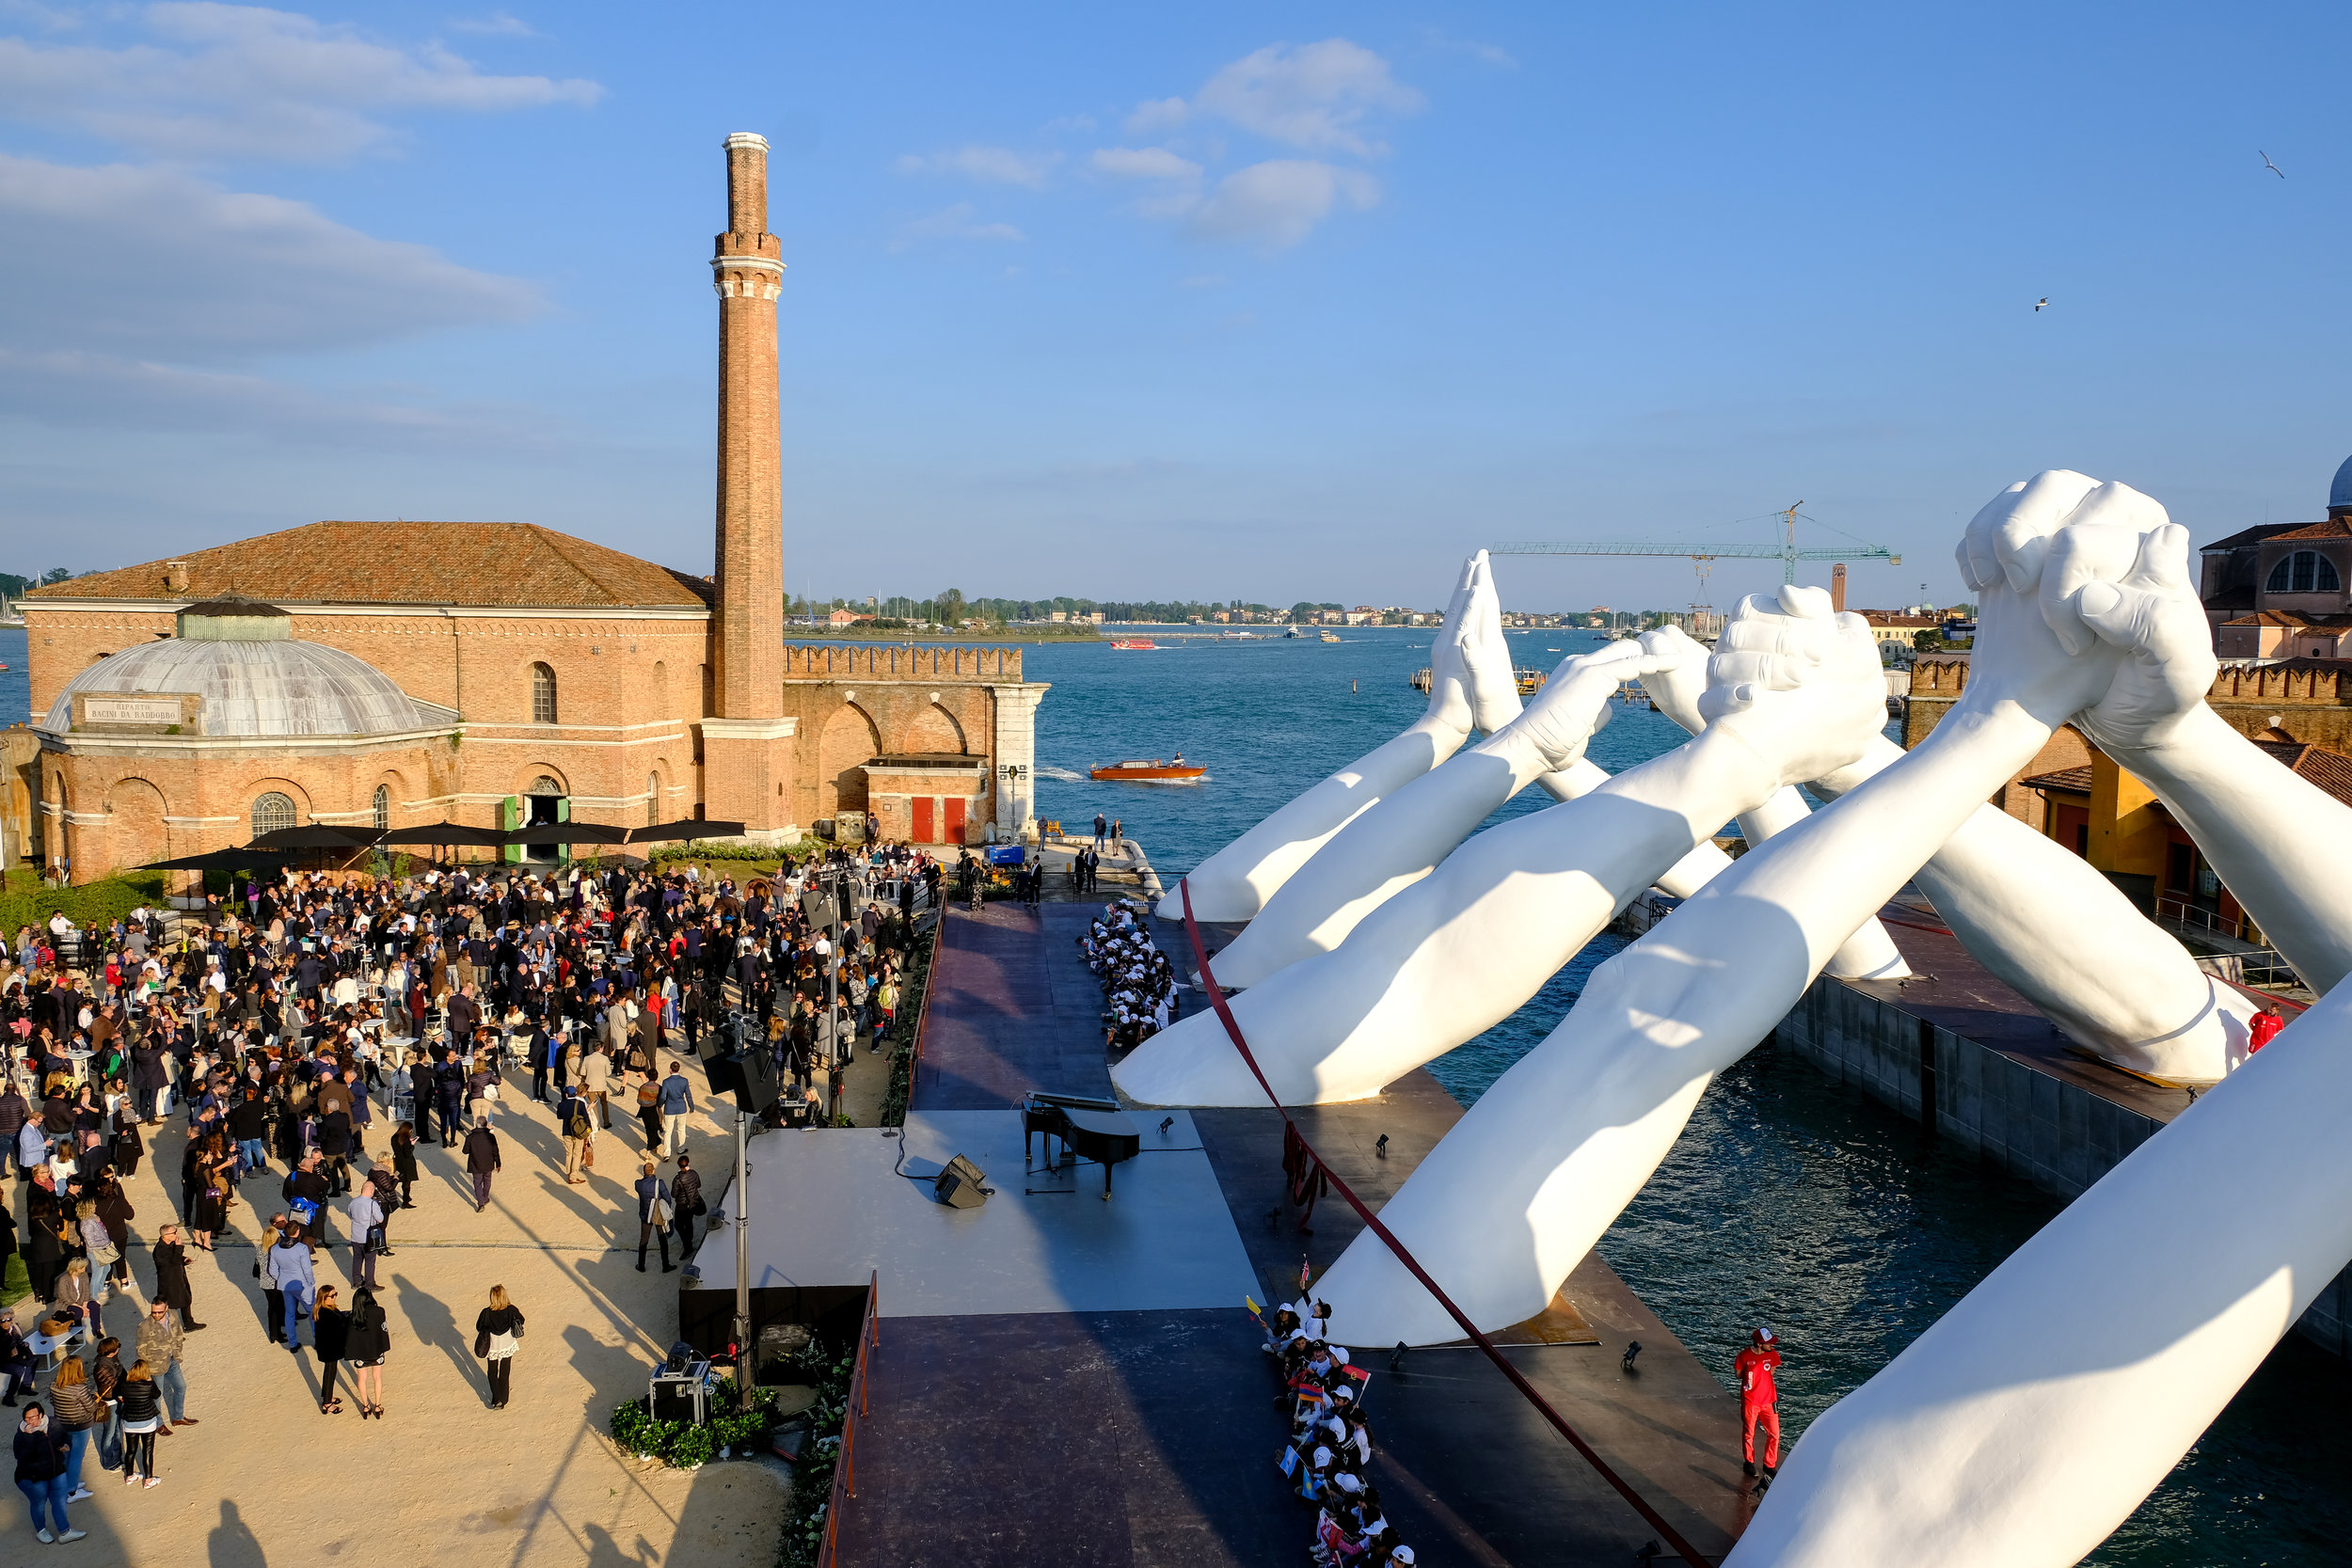 VENICE, ITALY - MAY 09: Lorenzo Quinn's Building Bridges by Halcyon Gallery during Venice Biennale 2019 on May 09, 2019 in Venice, Italy. (Photo by David M. Benett/Dave Benett/Getty Images for Halcyon Art International)